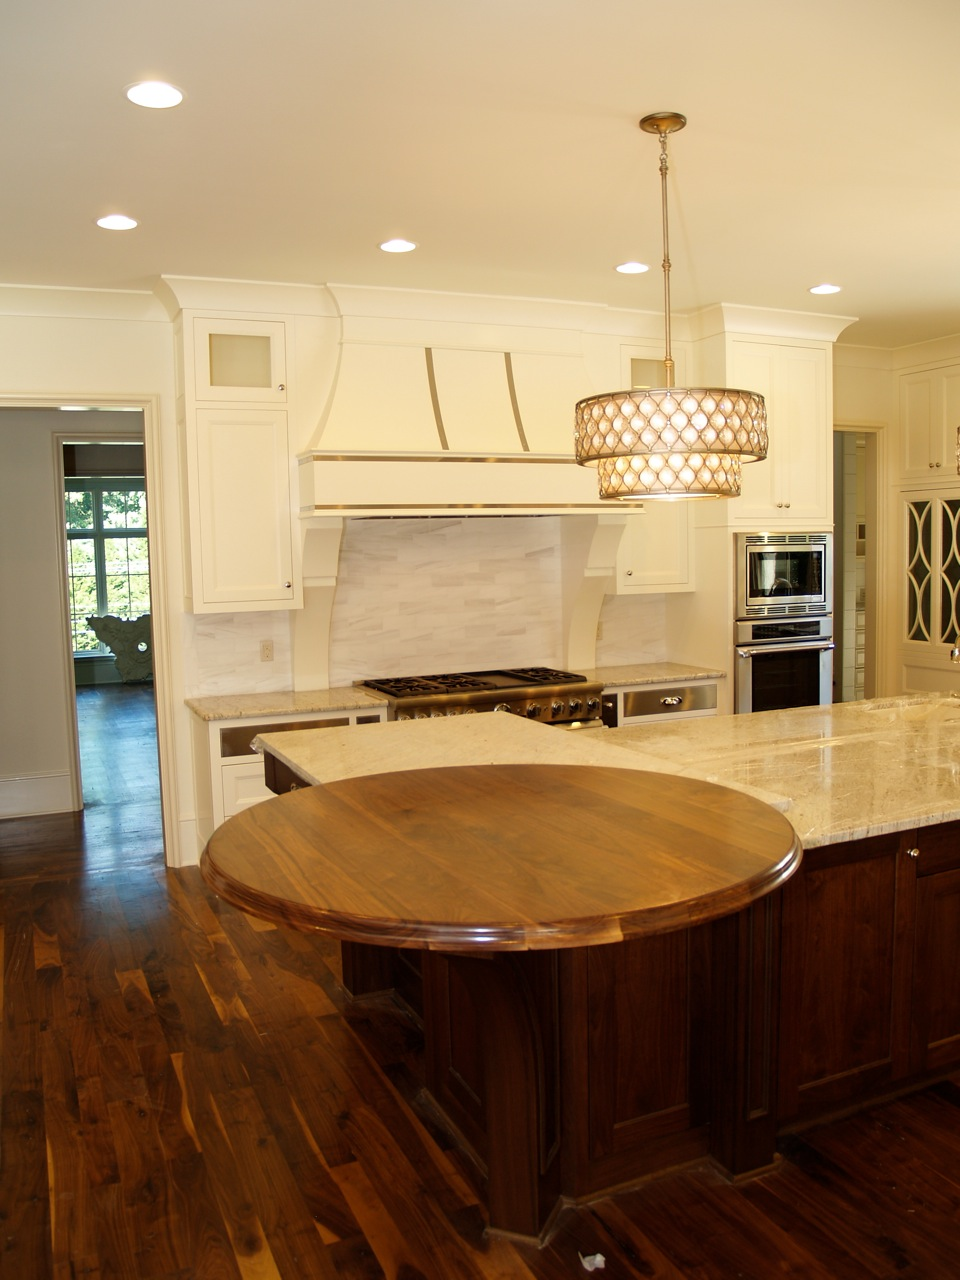 Walnut Wood Countertop, 54u201d Diameter, Large Double Roman Ogee Edge,  Permanent Finish. This Walnut Round Top Was Installed In Charlotte, NC .